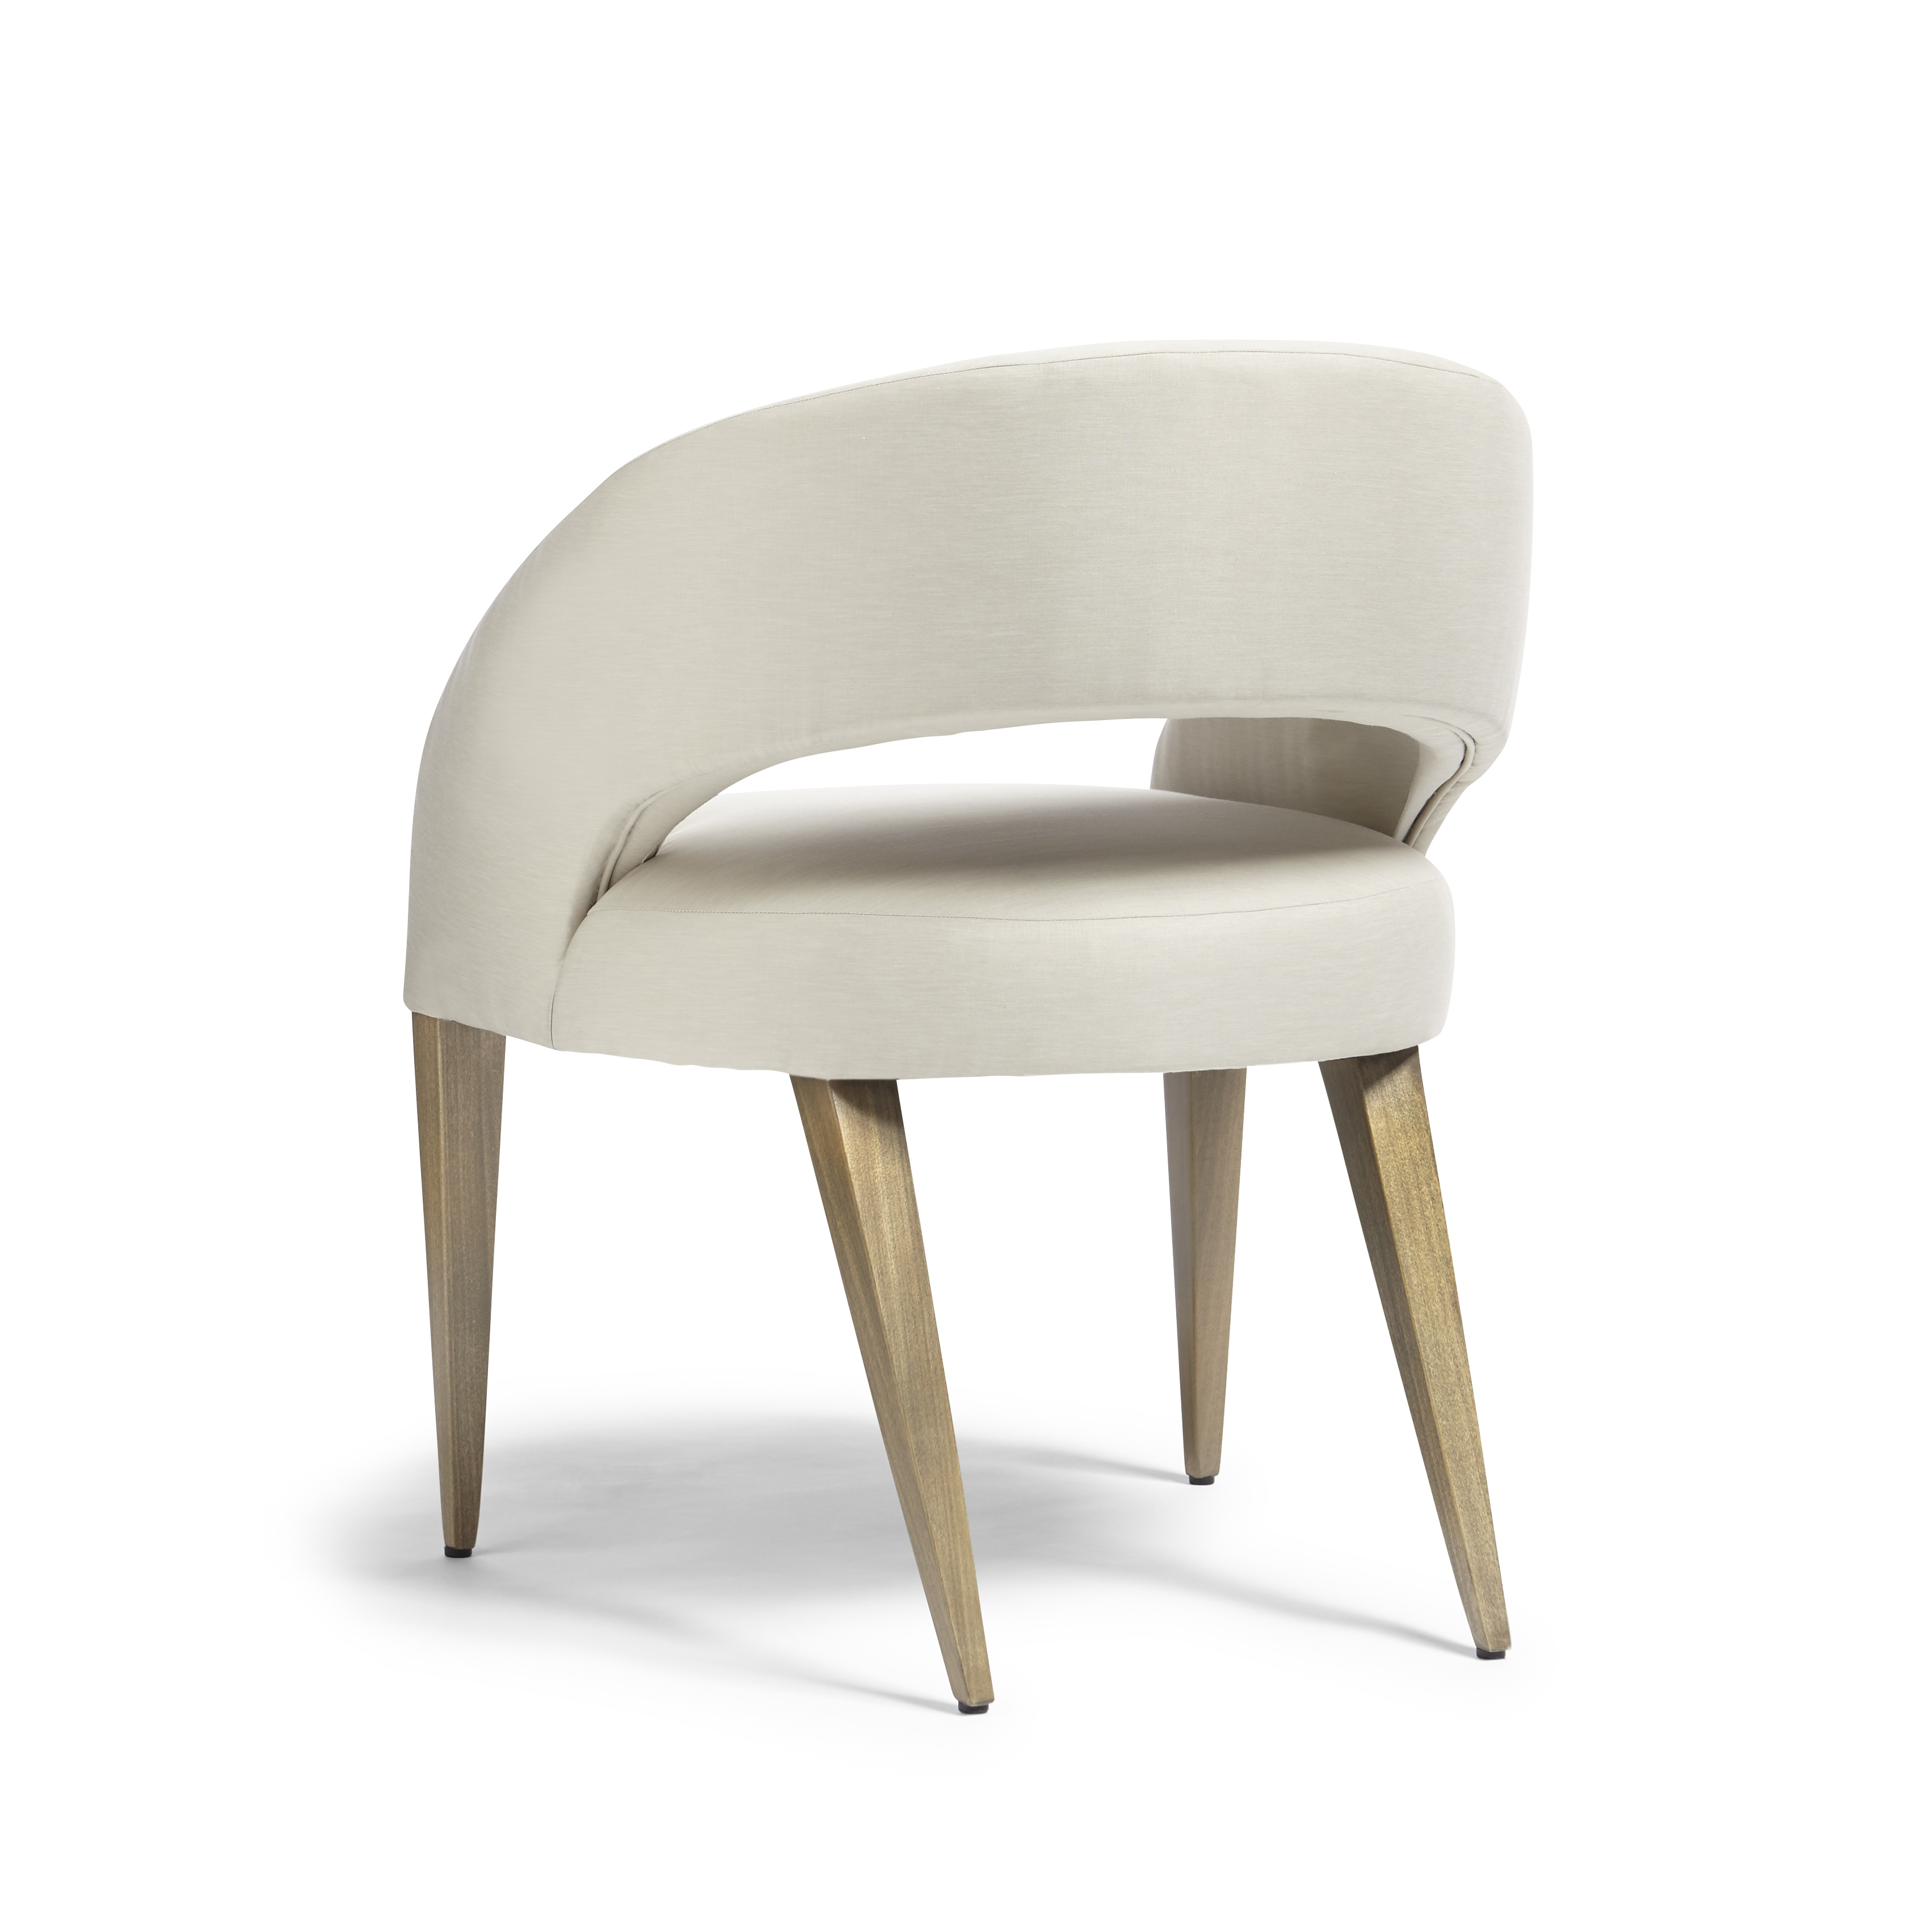 Well Liked Melone Side Chair – Lazar Inside Clint Side Chairs (View 20 of 20)